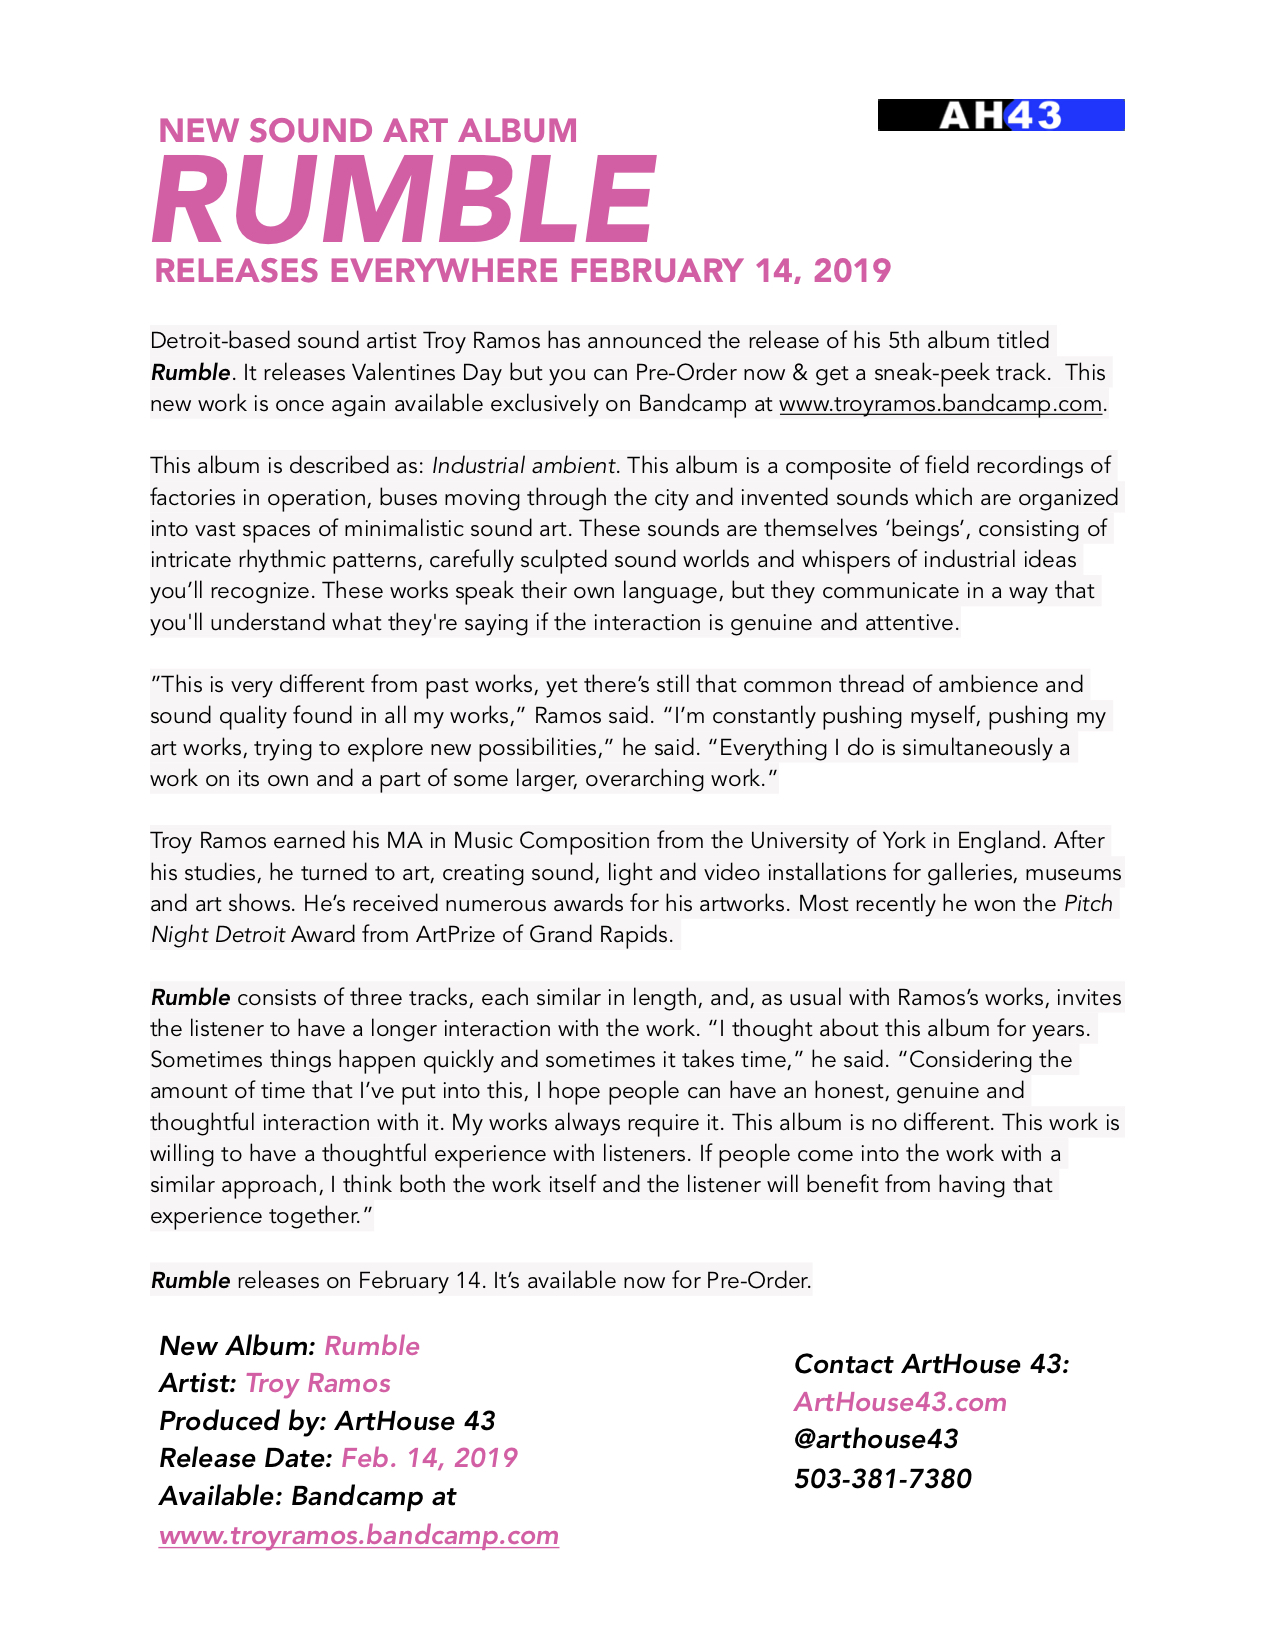 Rumble Album Press Release Troy Ramos ArtHouse 43 2019.jpg